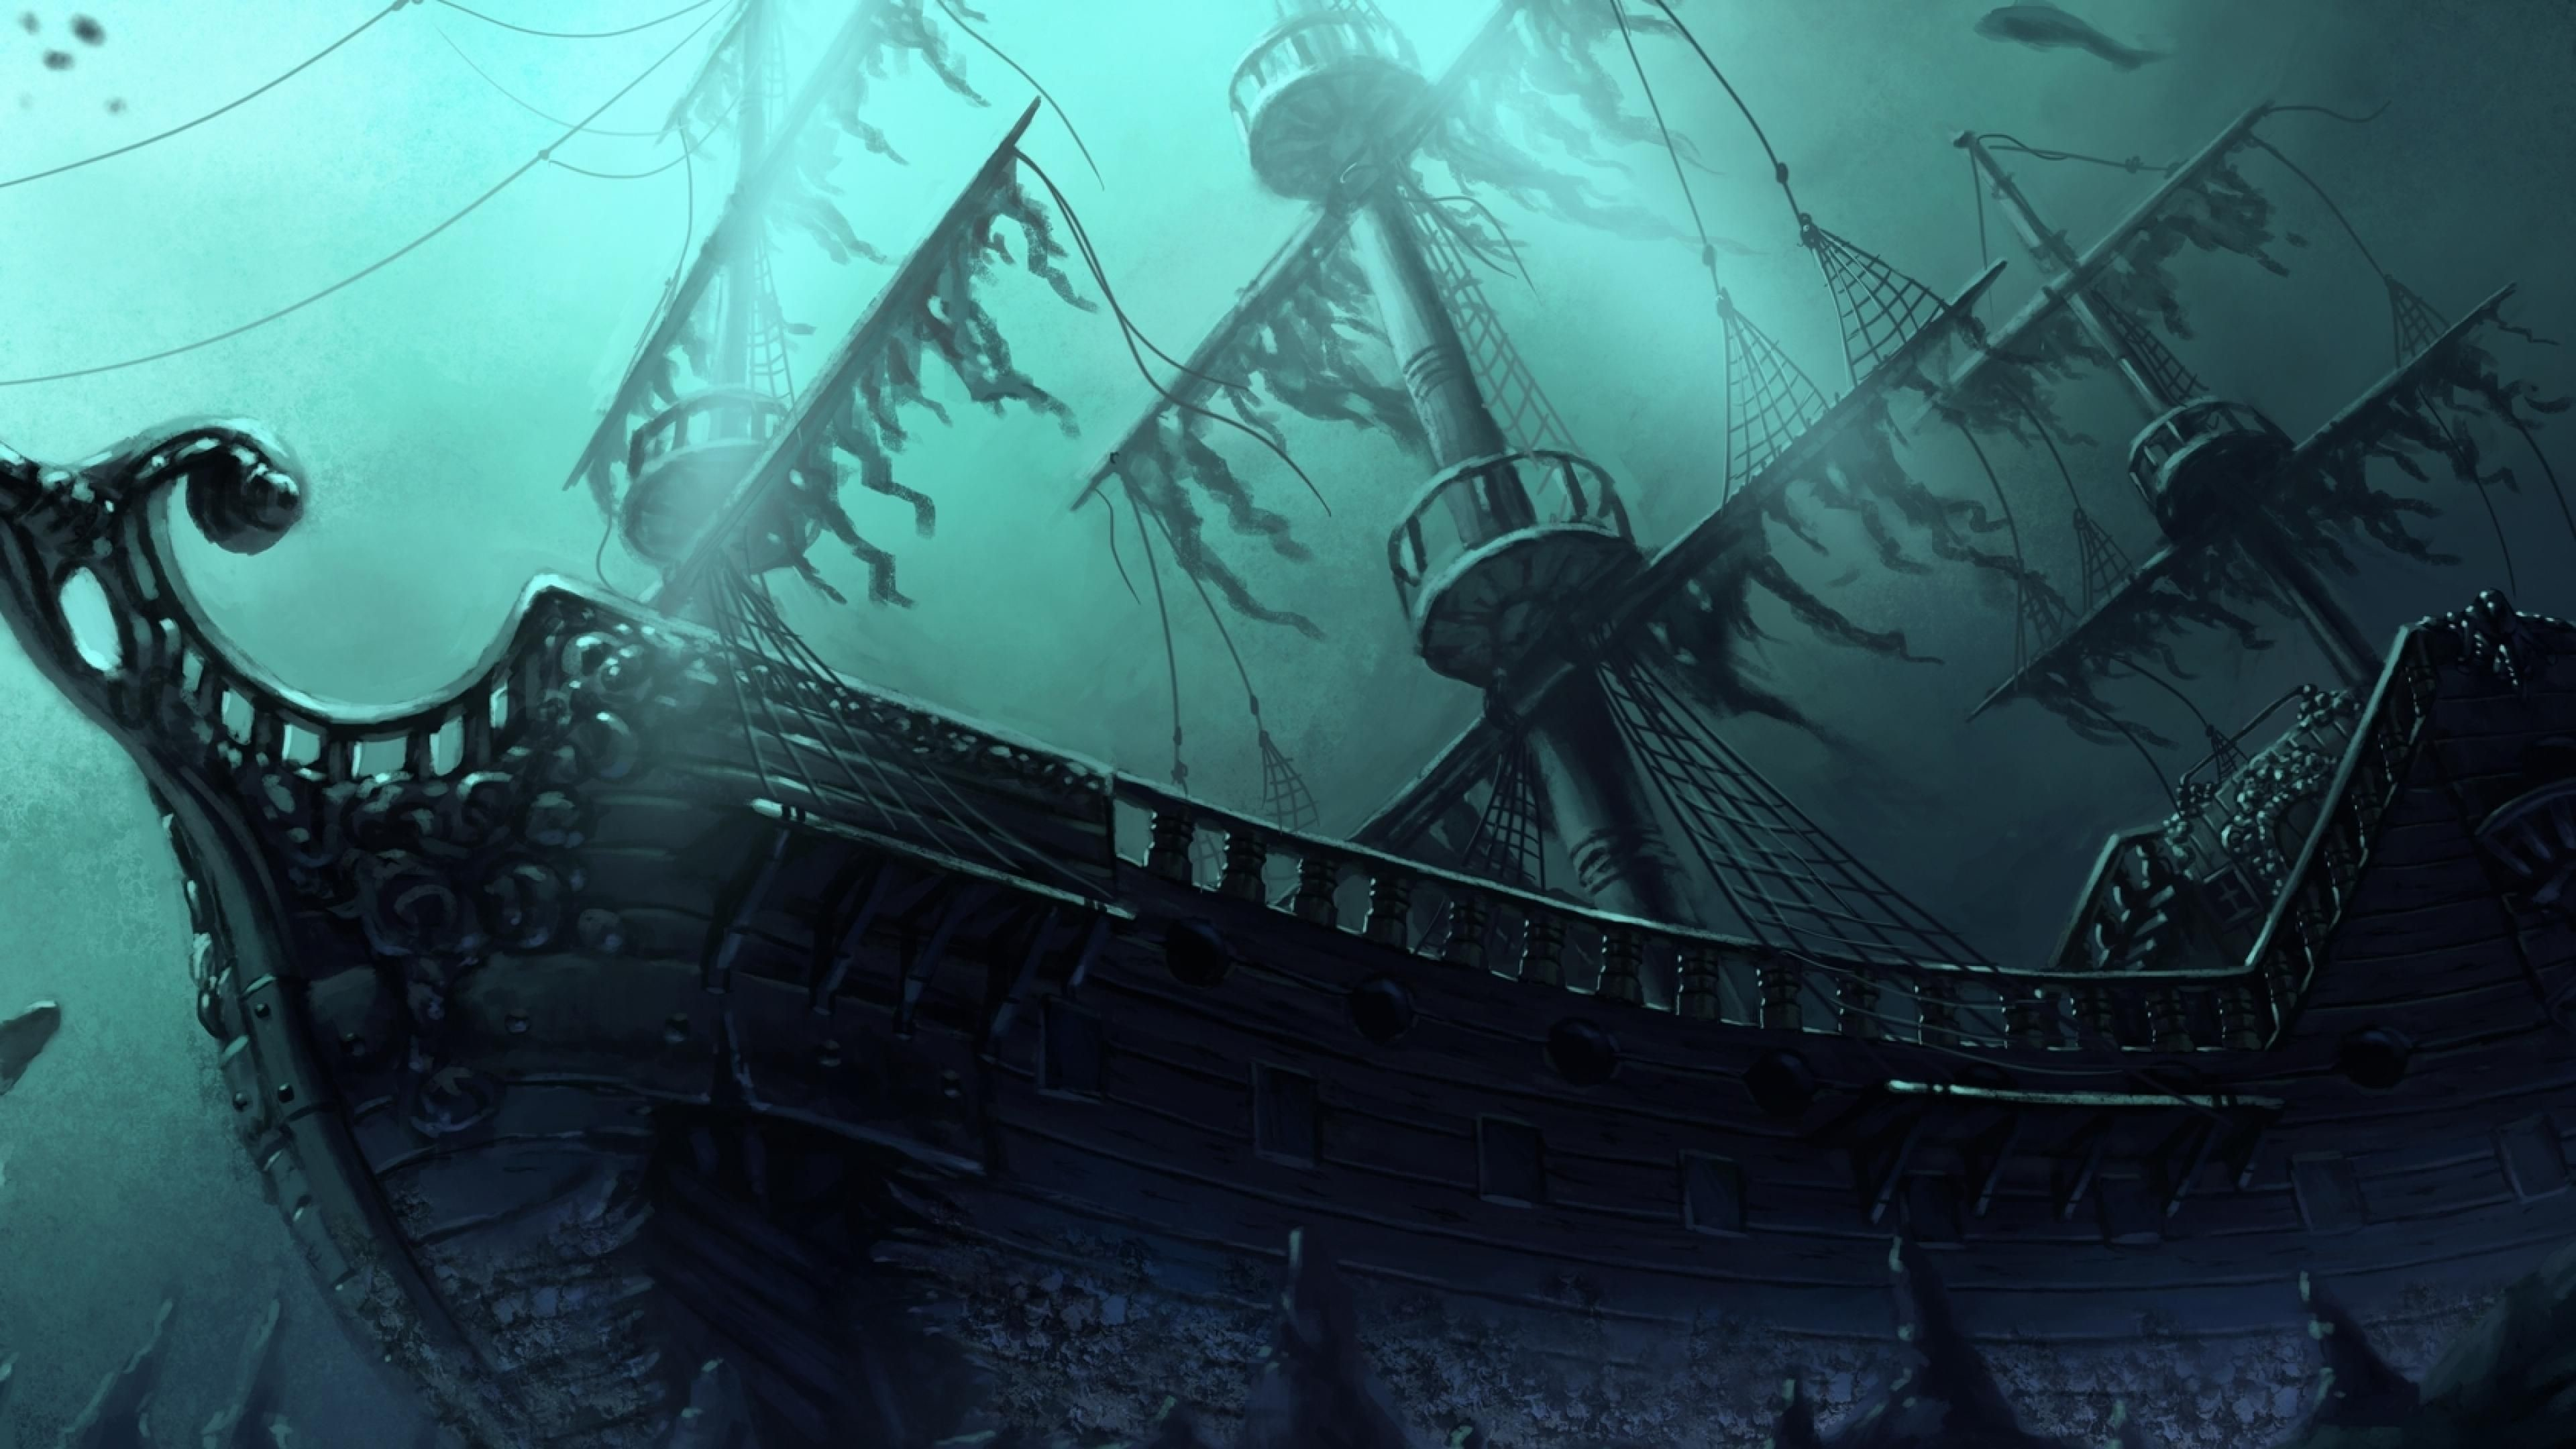 Res: 3840x2160, Ghost Pirate Ship Wallpaper High Quality Resolution